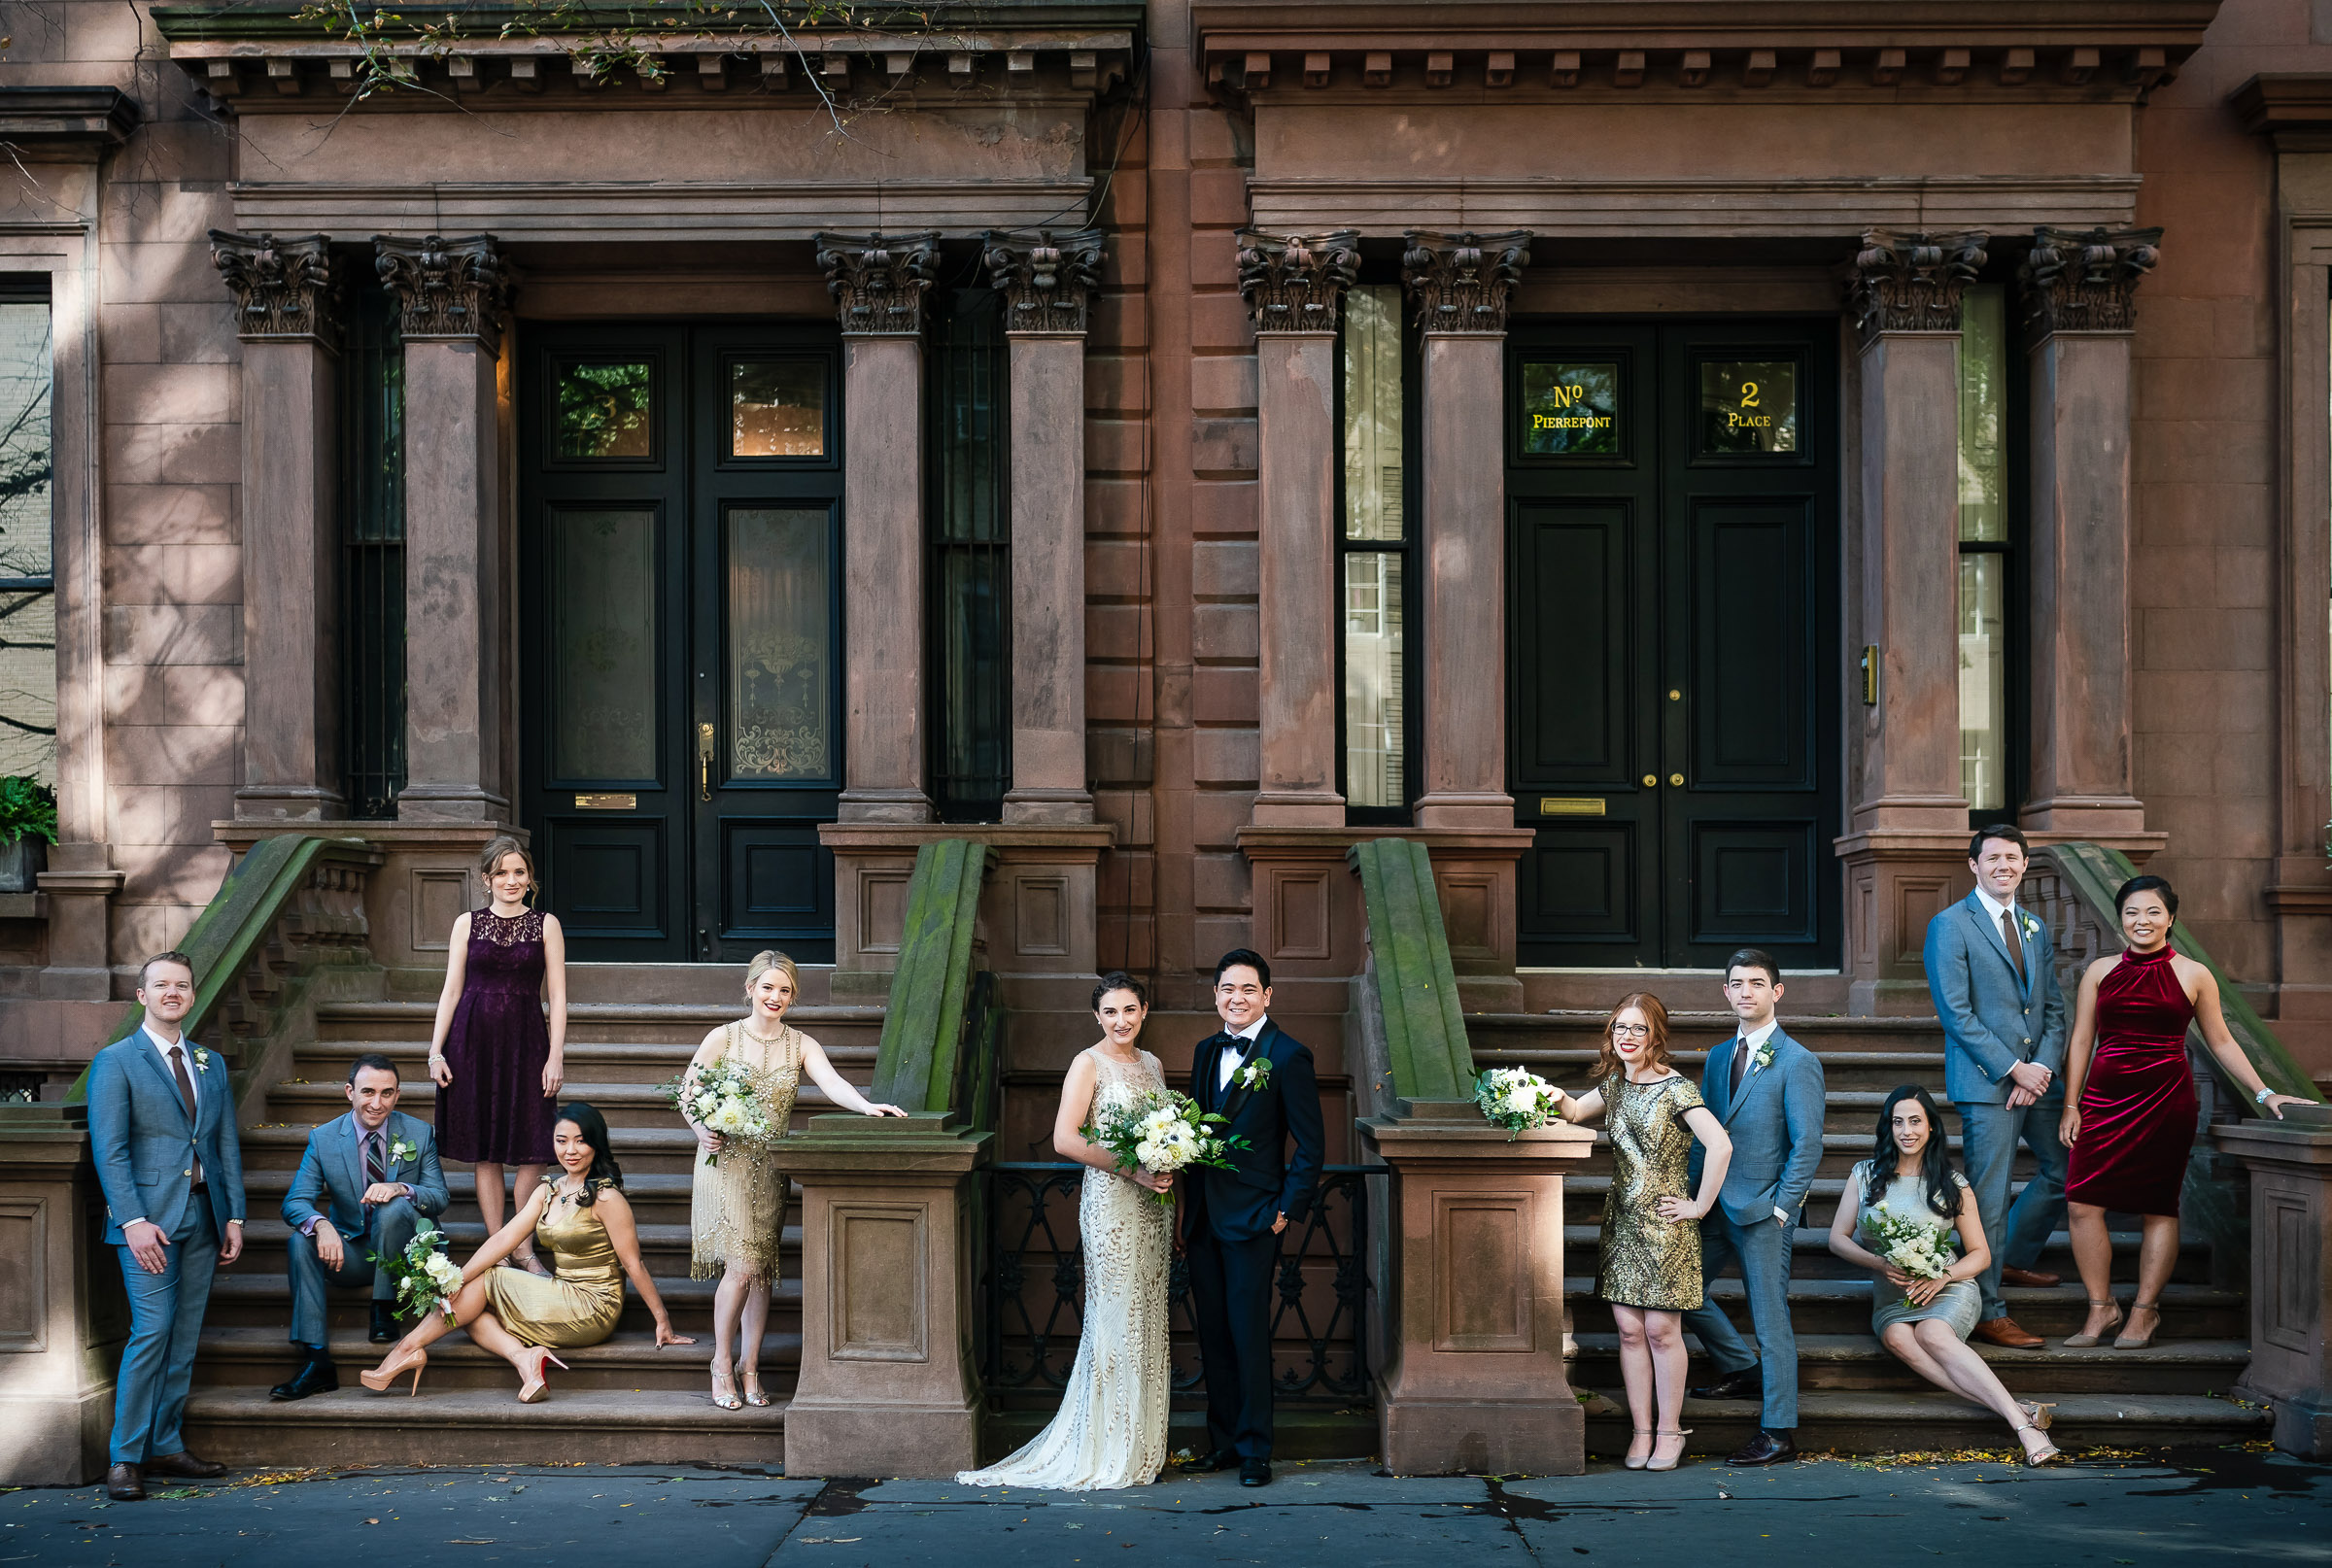 Classic wedding group shot on brownstone stairs - photo by The Brenizers